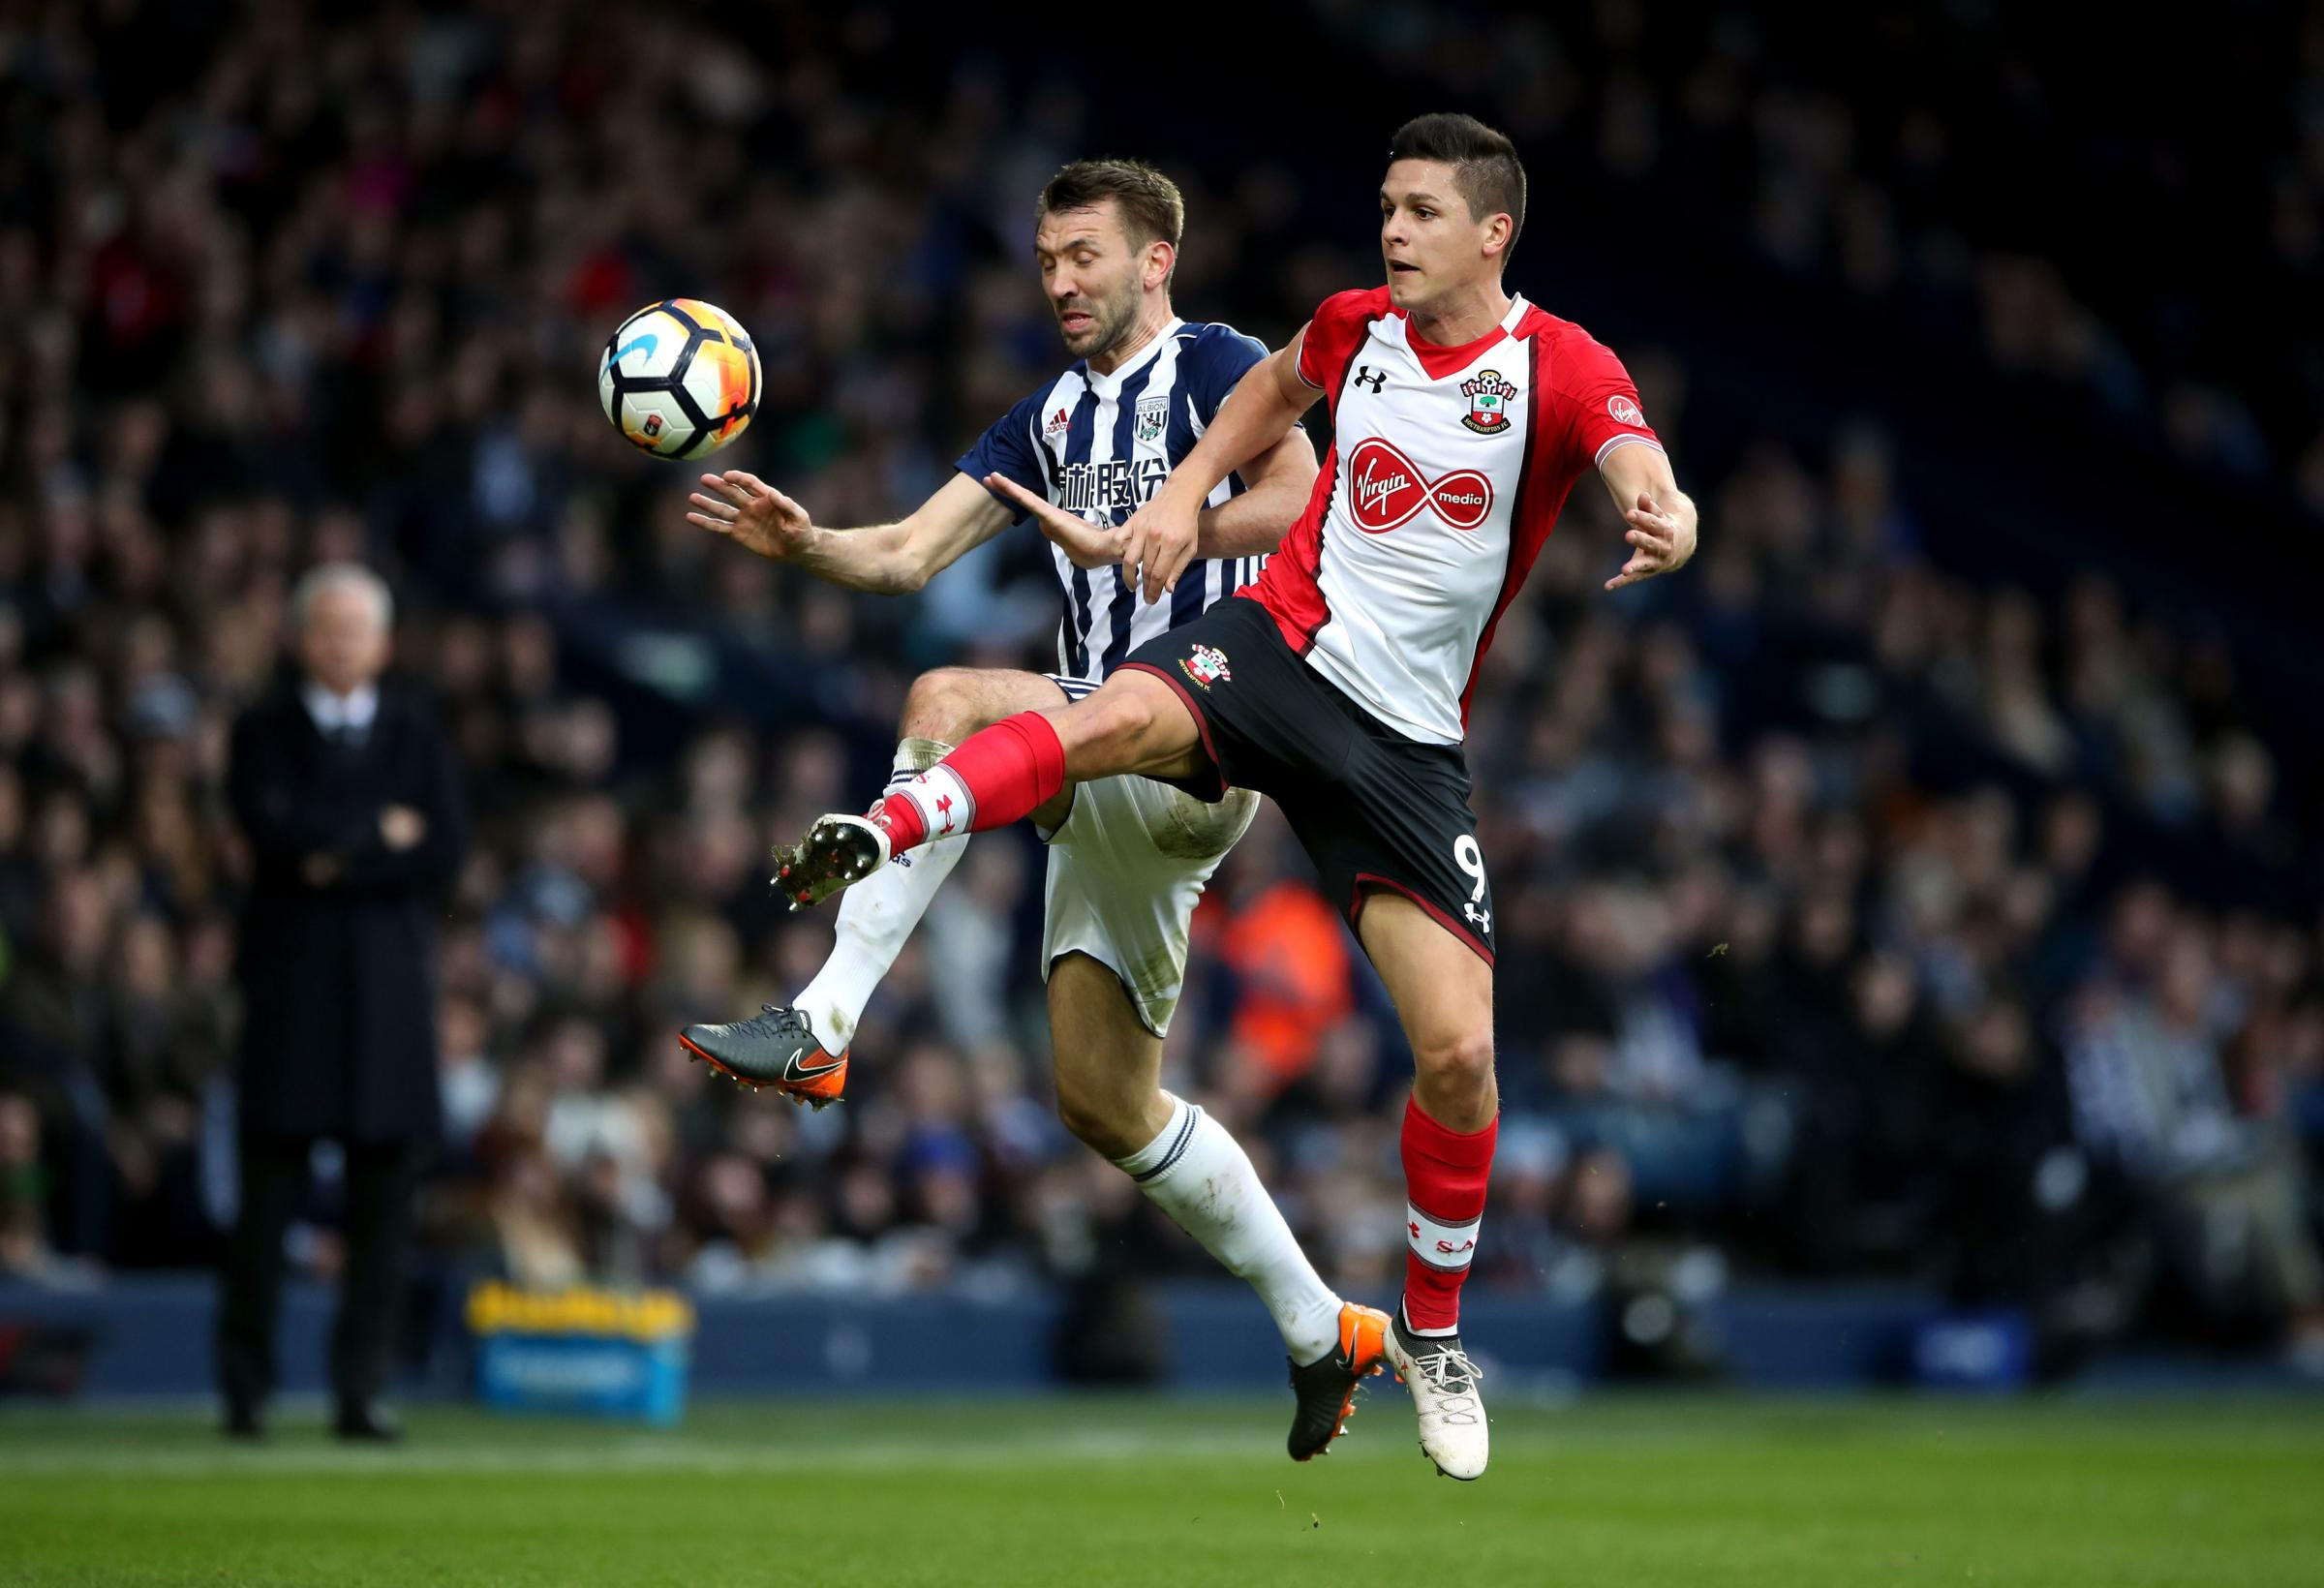 THE MIDWEEK VIEW: Southampton analysis and opinion from Adam Leitch